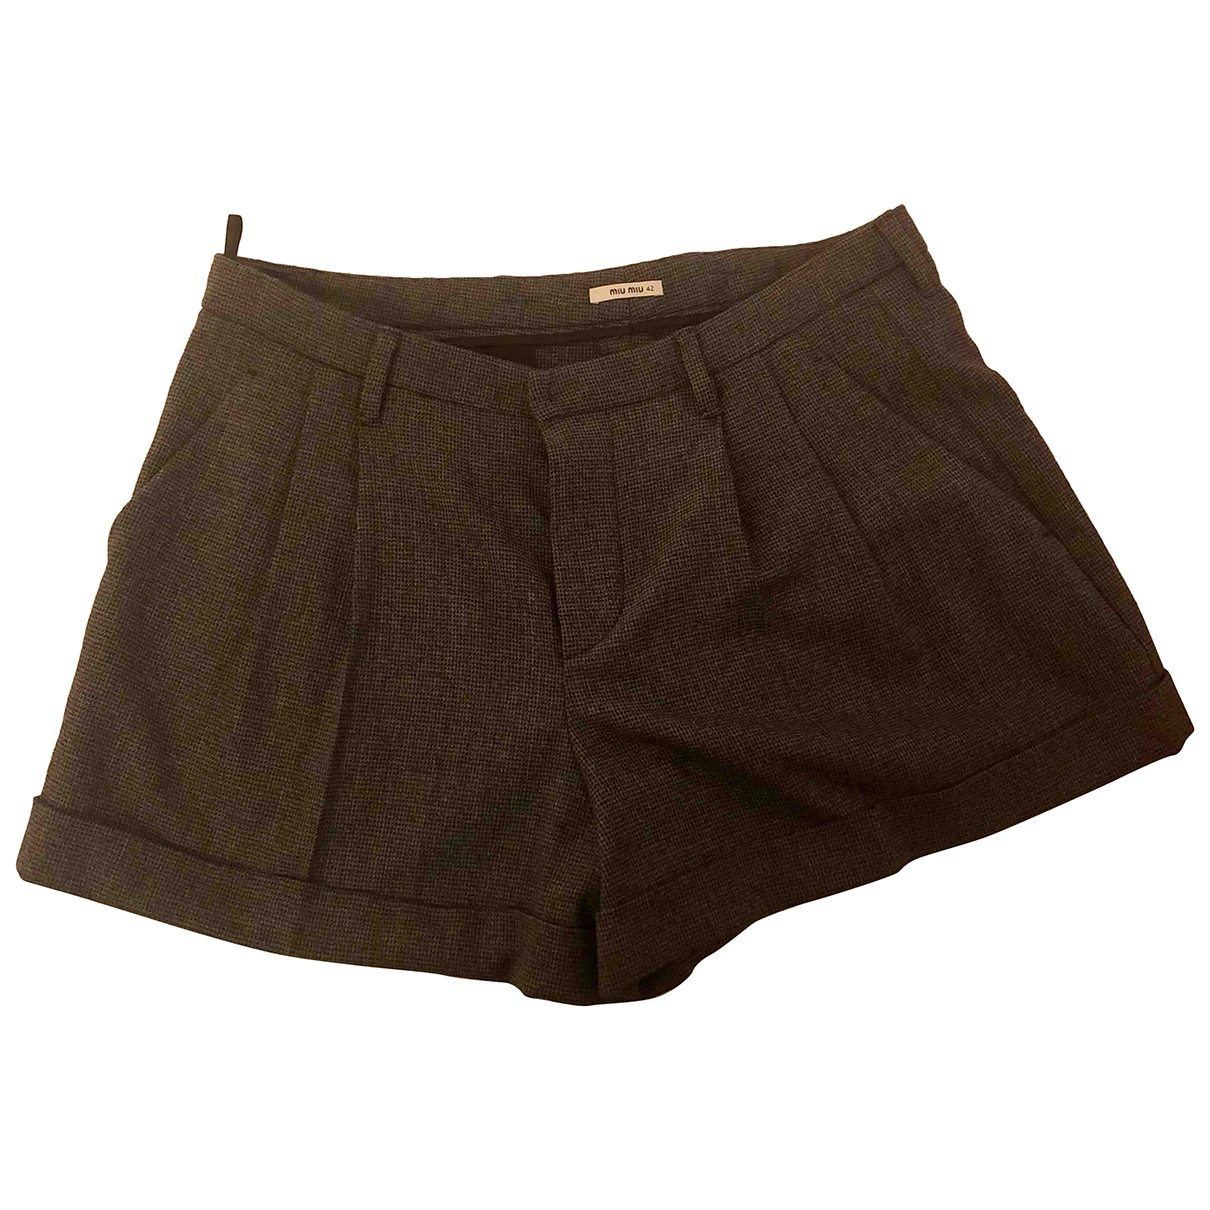 Miu Miu \N Shorts in  Grau Wolle